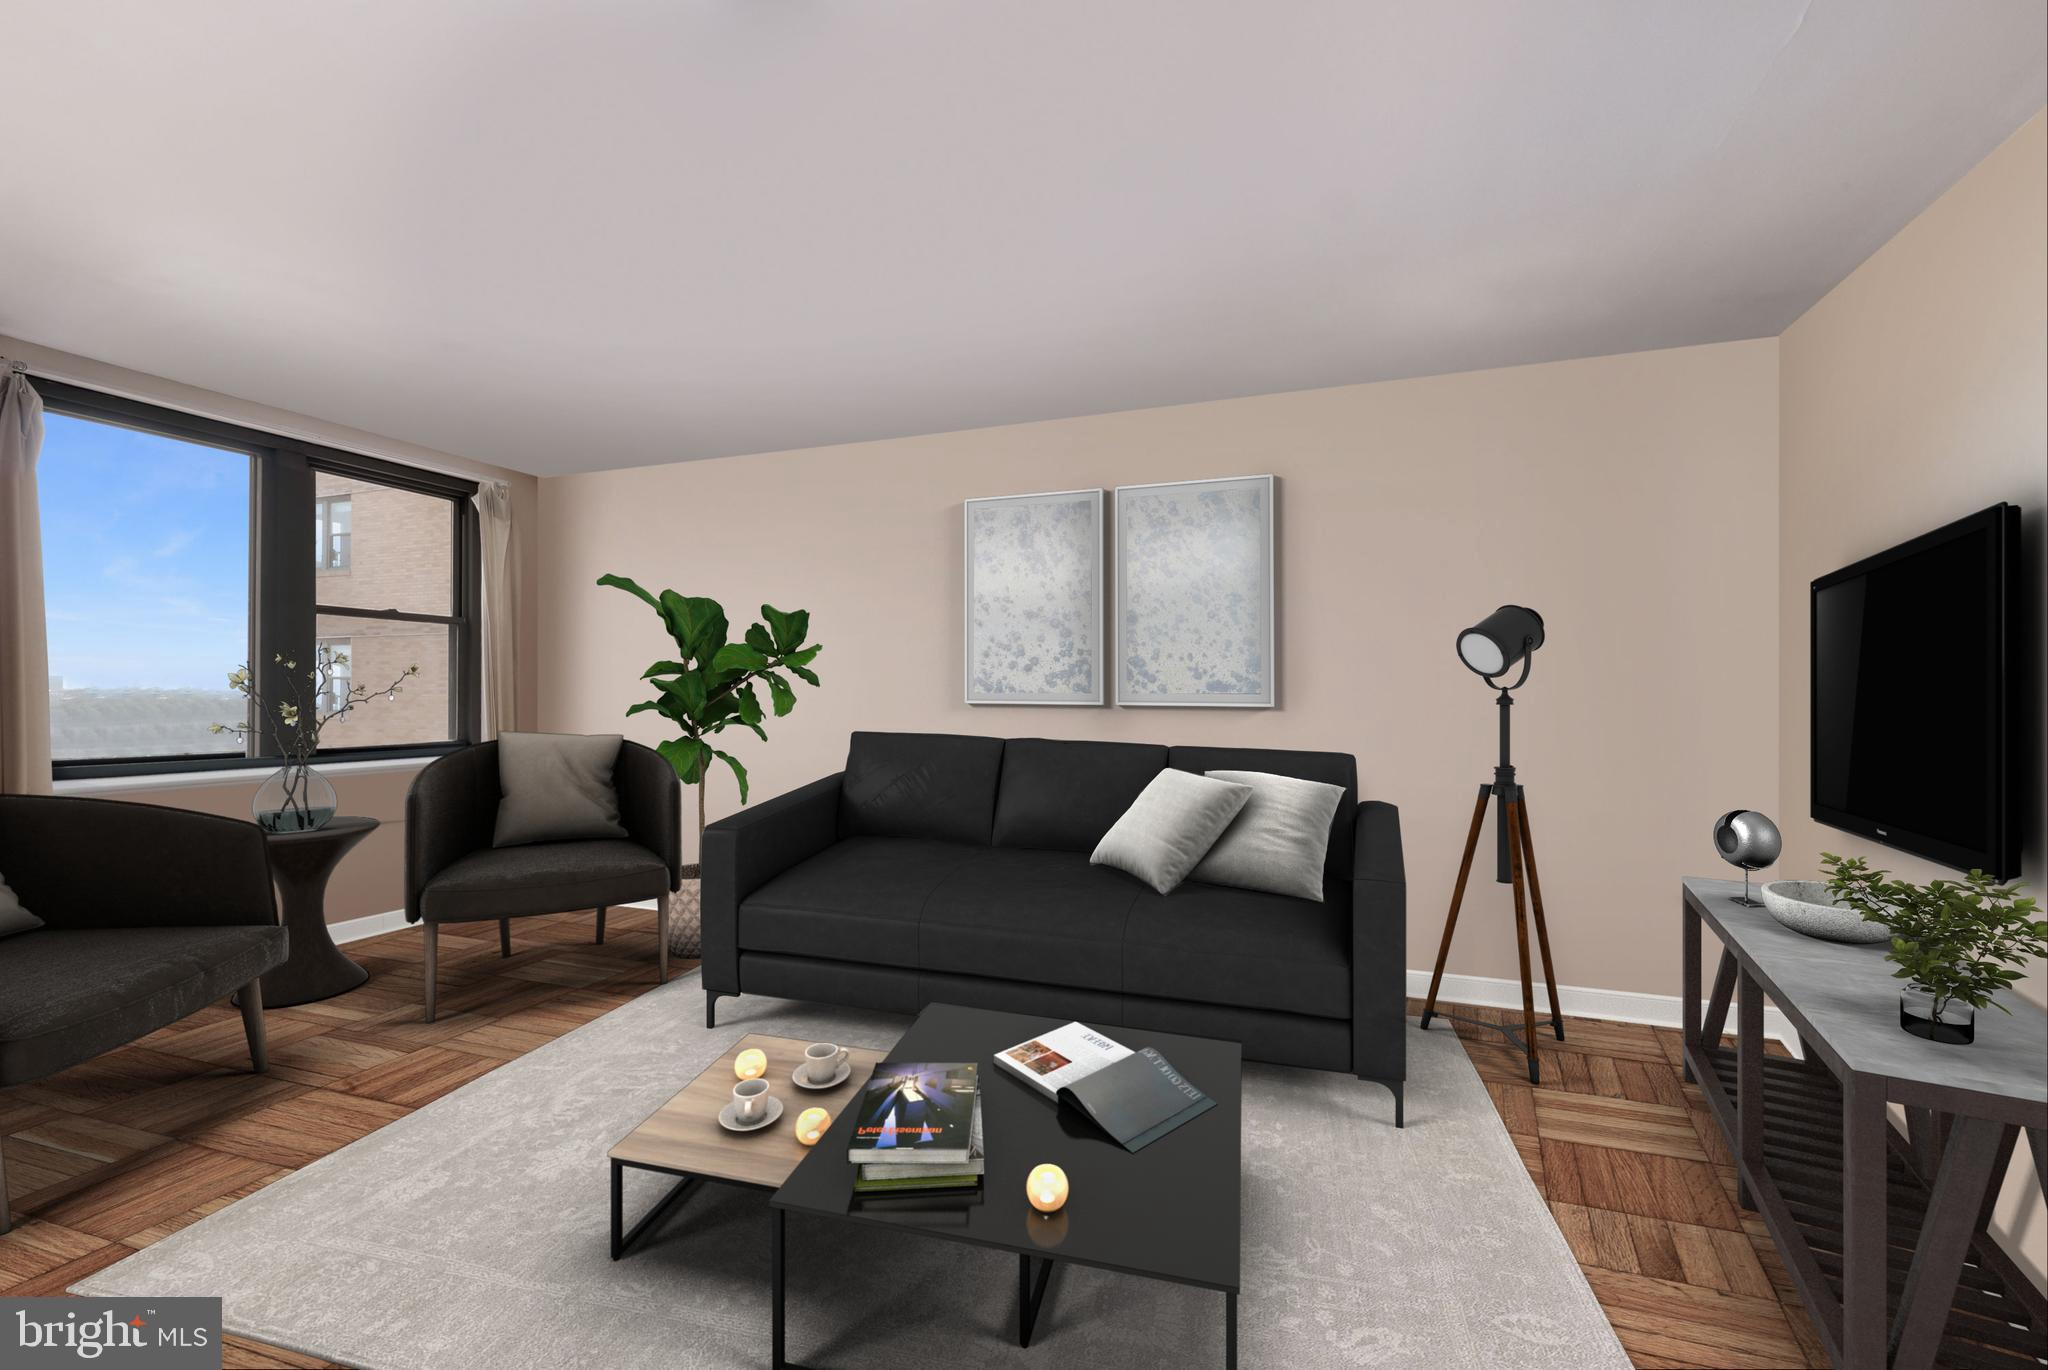 Picture perfect  renovated 2 BEDROOM 1 BATH condo FACING FAIRMOUNT PARK and THE PHILADELPHIA ART MUSEUM,for sale@ 2601 PENNSYLVANIA AVE . All open and sun splashed living and dining area. Kitchen with stunning black granite countertops,  stainless steel appliances,  and tons of cabinet space.  Each bedroom is gracious, with large closets.  All marble bath, and linen closet as well.  Enjoy living in this fantastic building, with magnificent lobby, business center, roof top deck, restaurant and market. Also, just minutes from Chop, University of Pennsylvania,  Wholefoods market,  and some of the city's best dining and coffee shops!